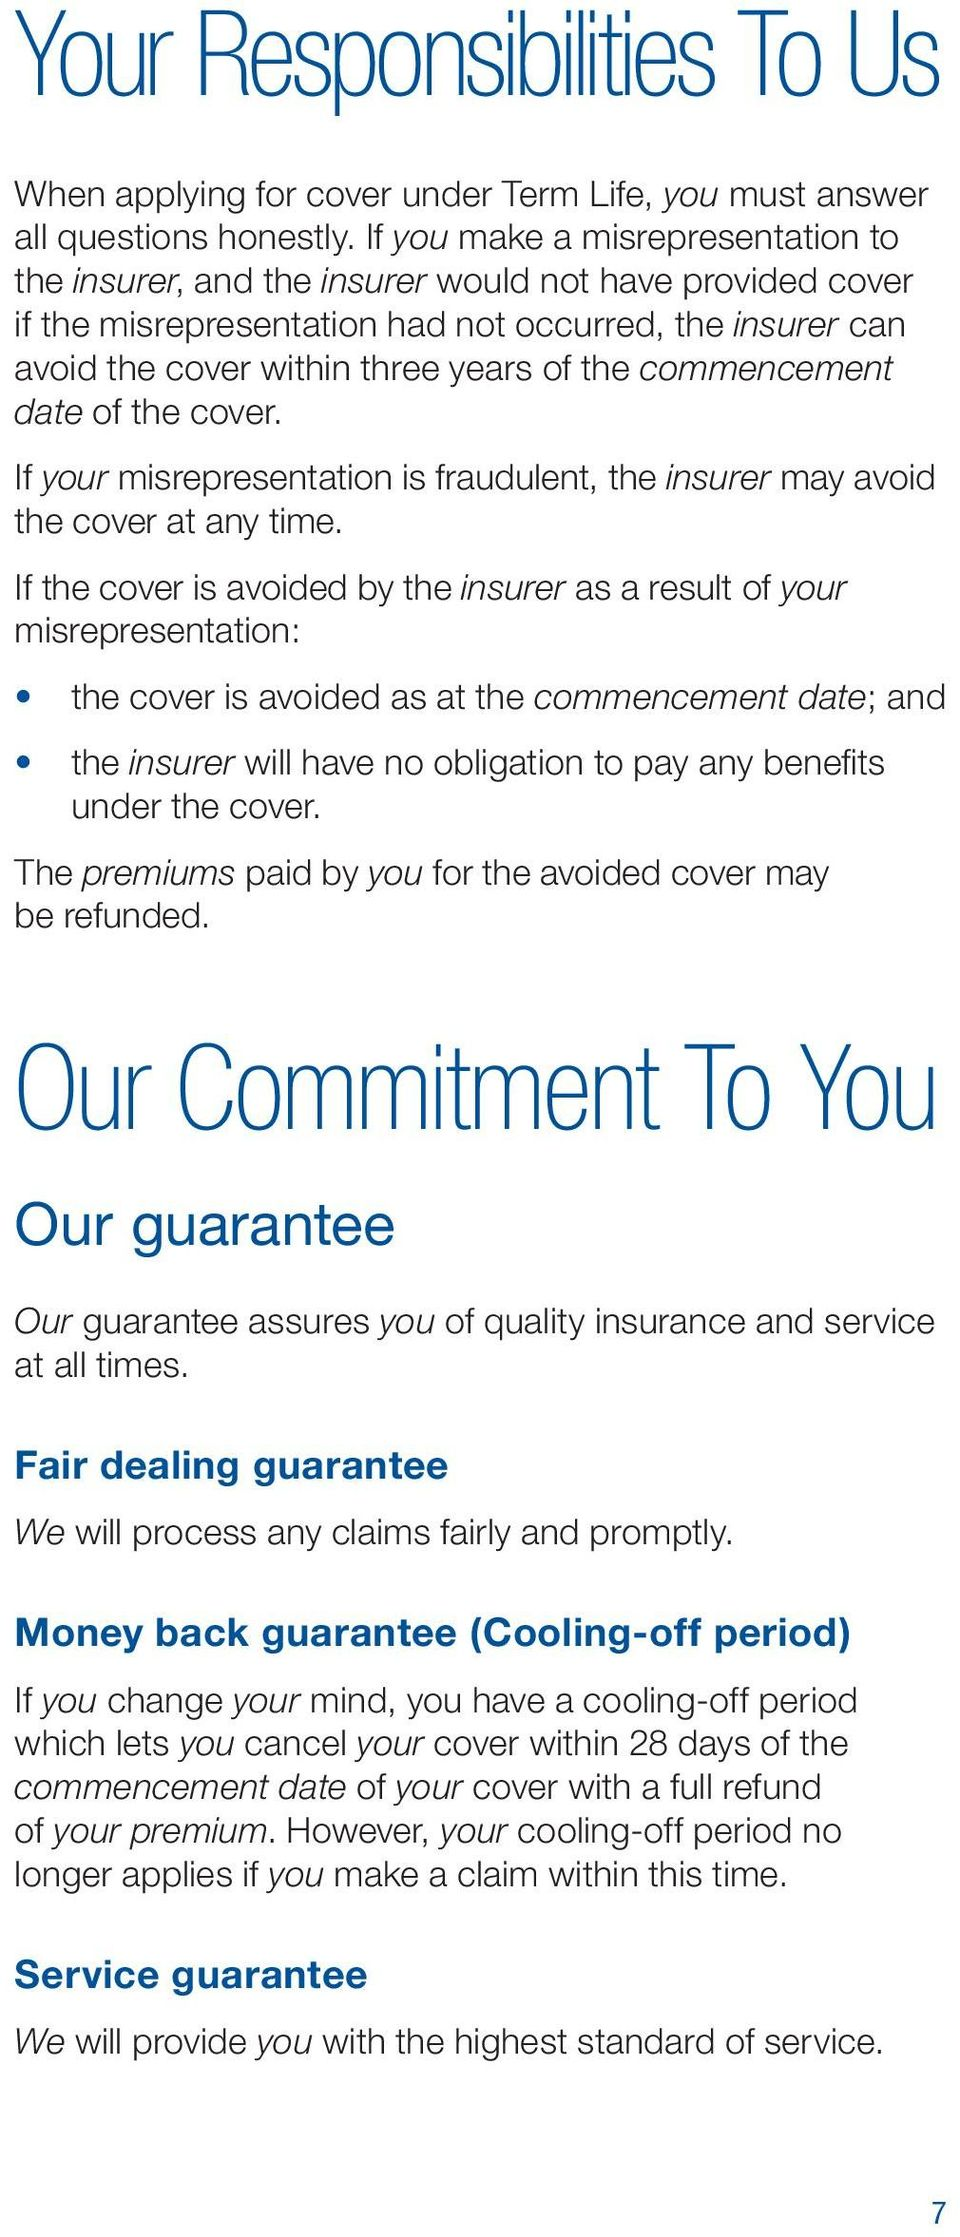 commencement date of the cover. If your misrepresentation is fraudulent, the insurer may avoid the cover at any time.